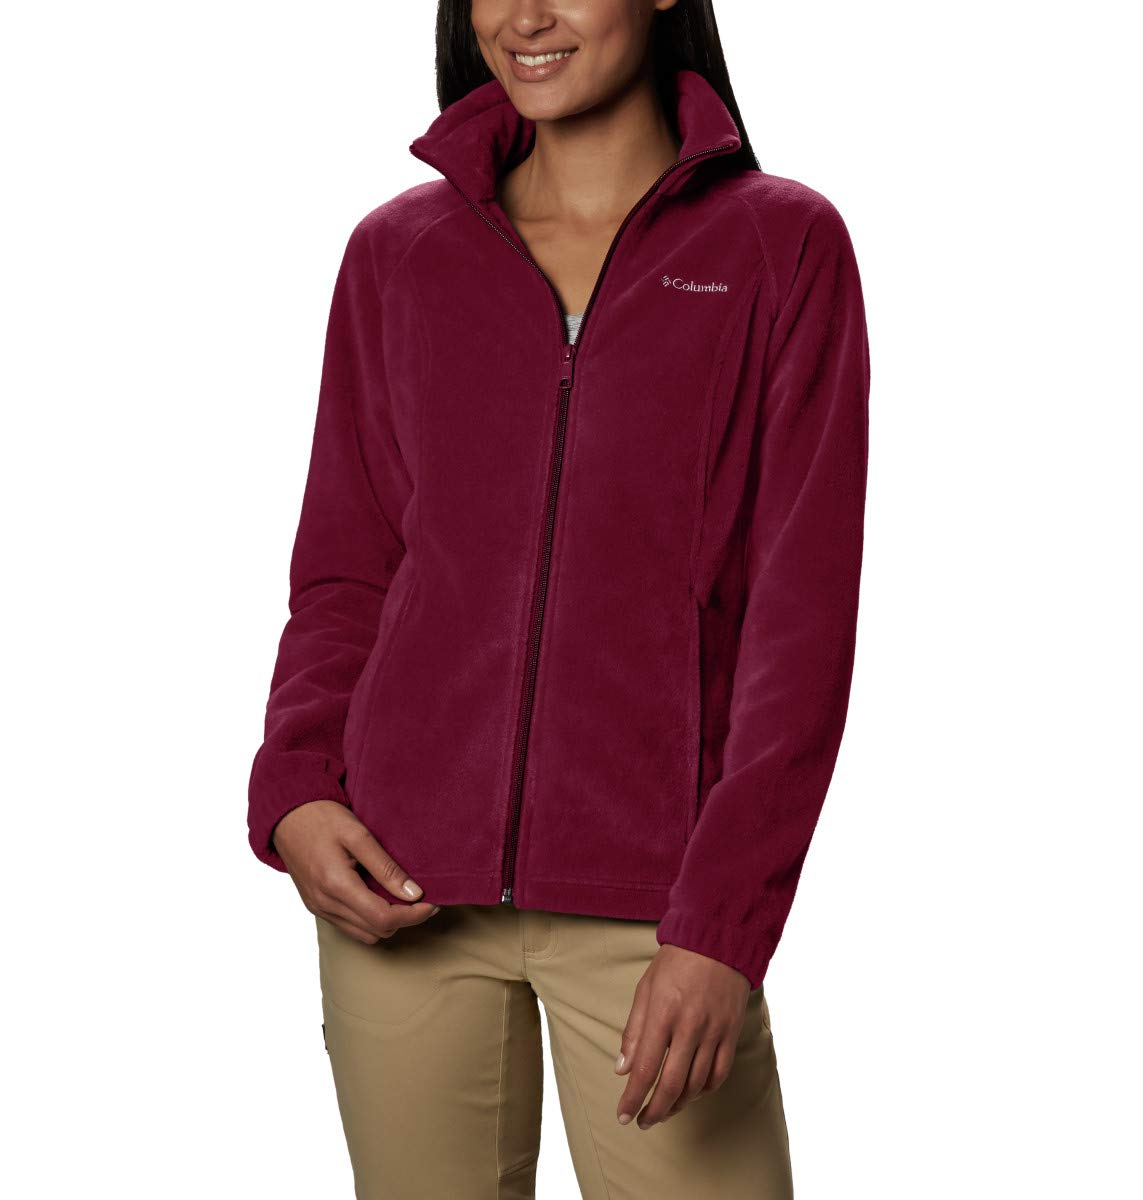 Columbia Women's Benton Springs Full Zip Jacket, Soft Fleece with Classic Fit, Rich Wine, Small by Columbia